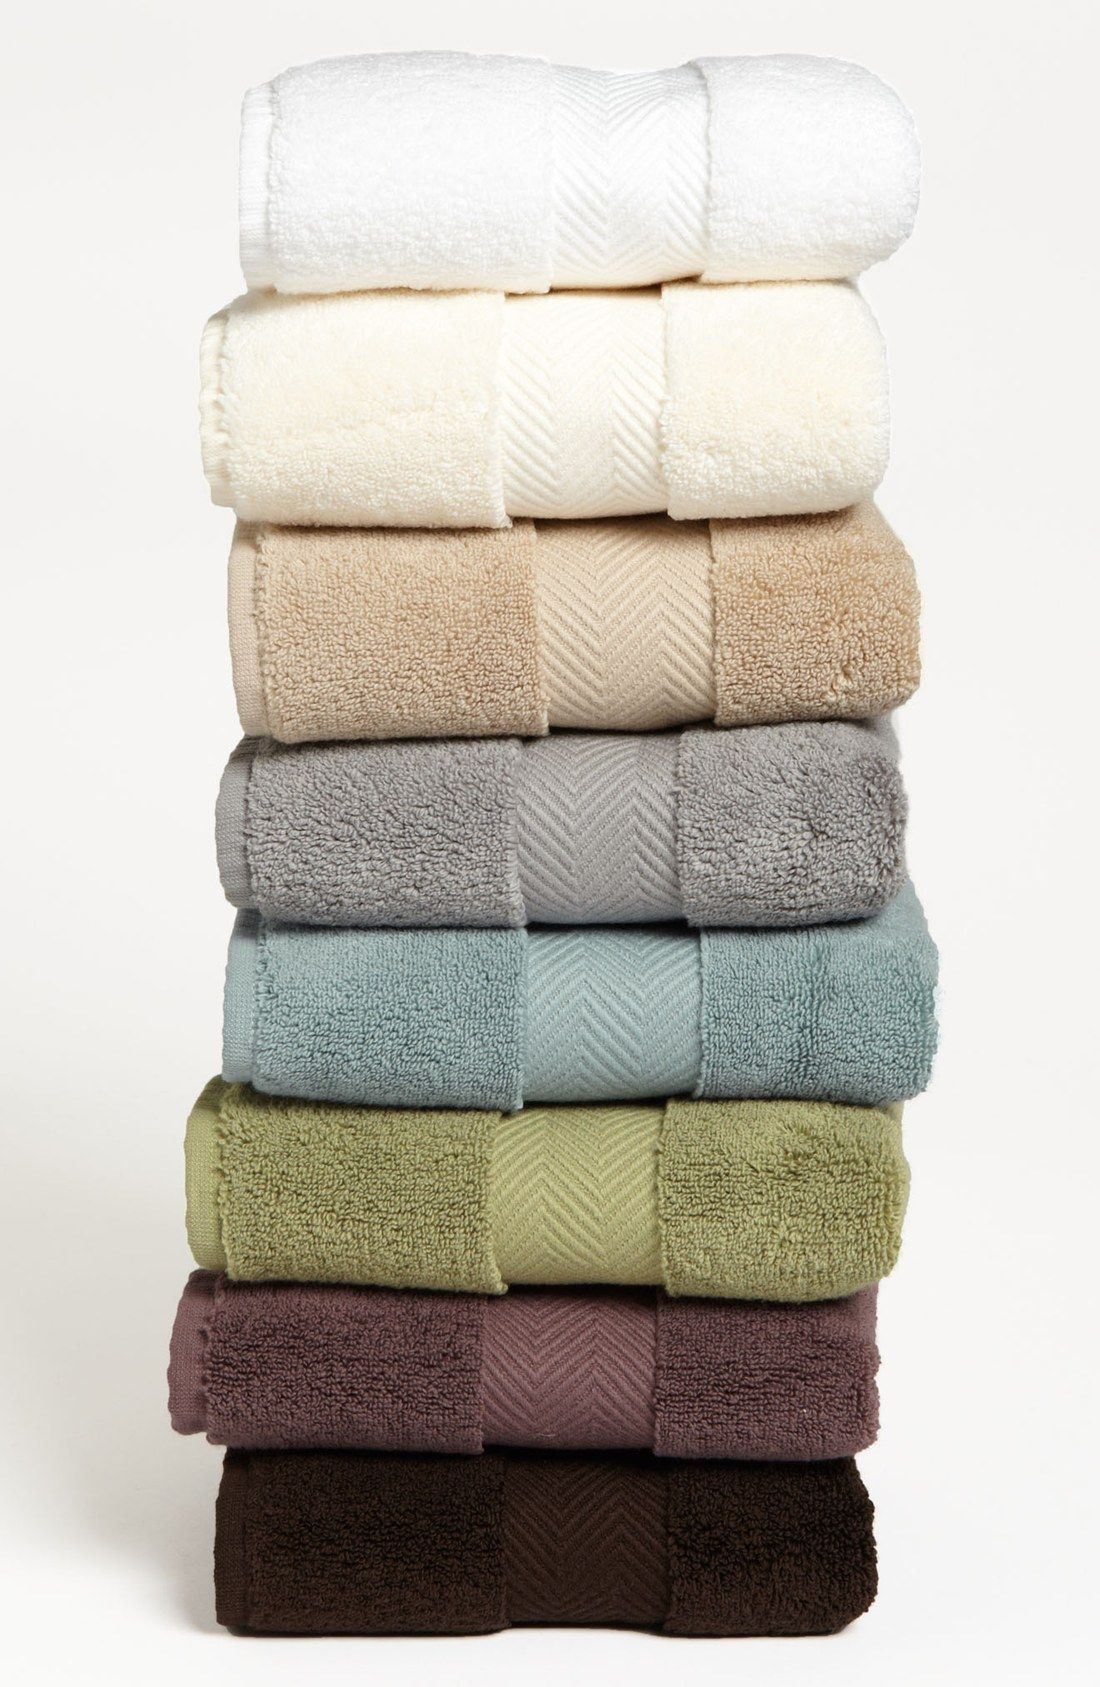 Hydrocotton Bath Towels Pleasing Now This Looks Comfy  Hydrocotton Ultra Soft Hand Towel Inspiration